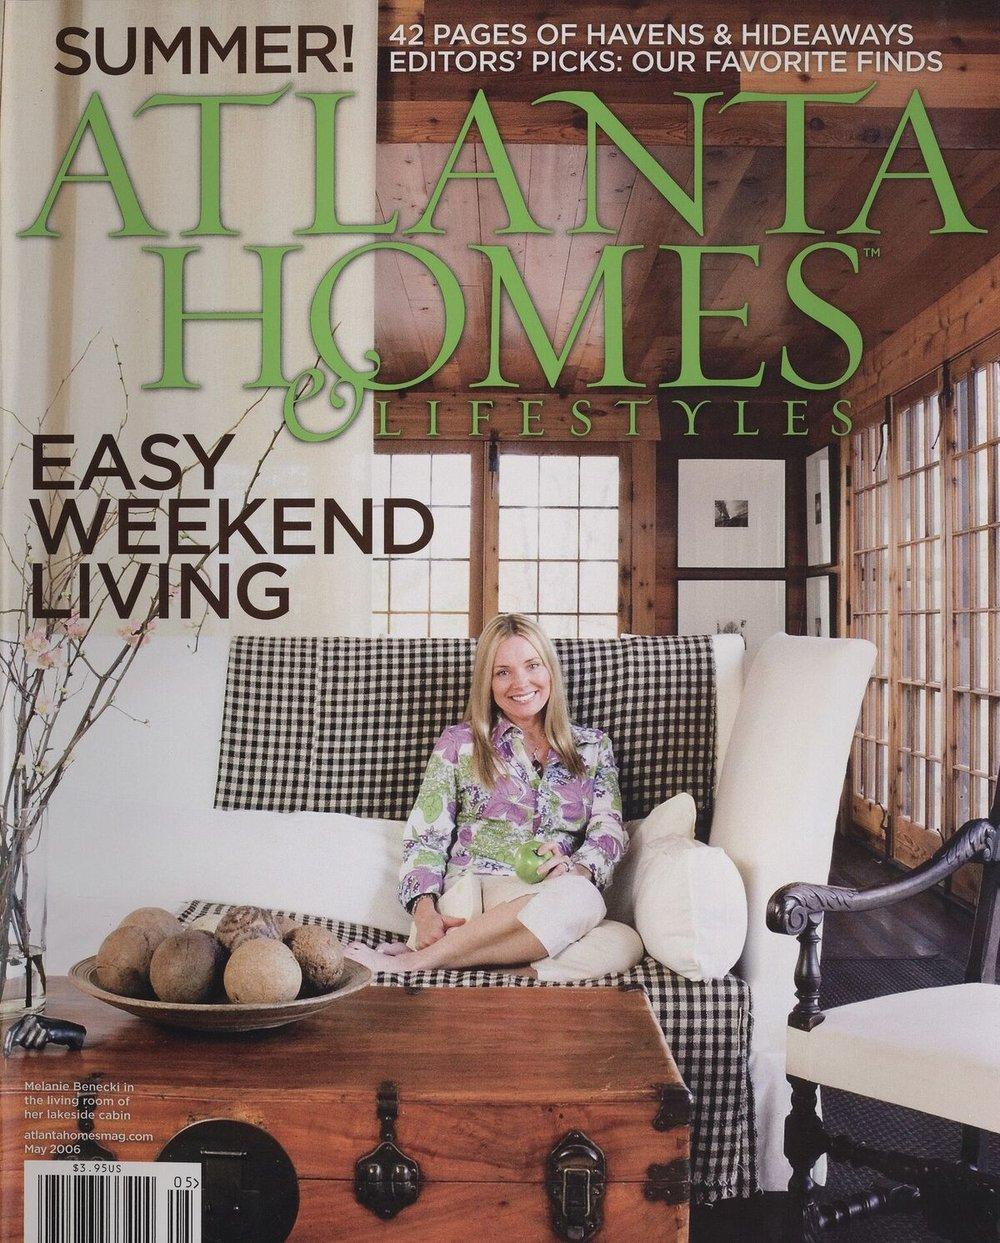 Cottage Living - Published in Atlanta Homes & Lifestyles, May 2006